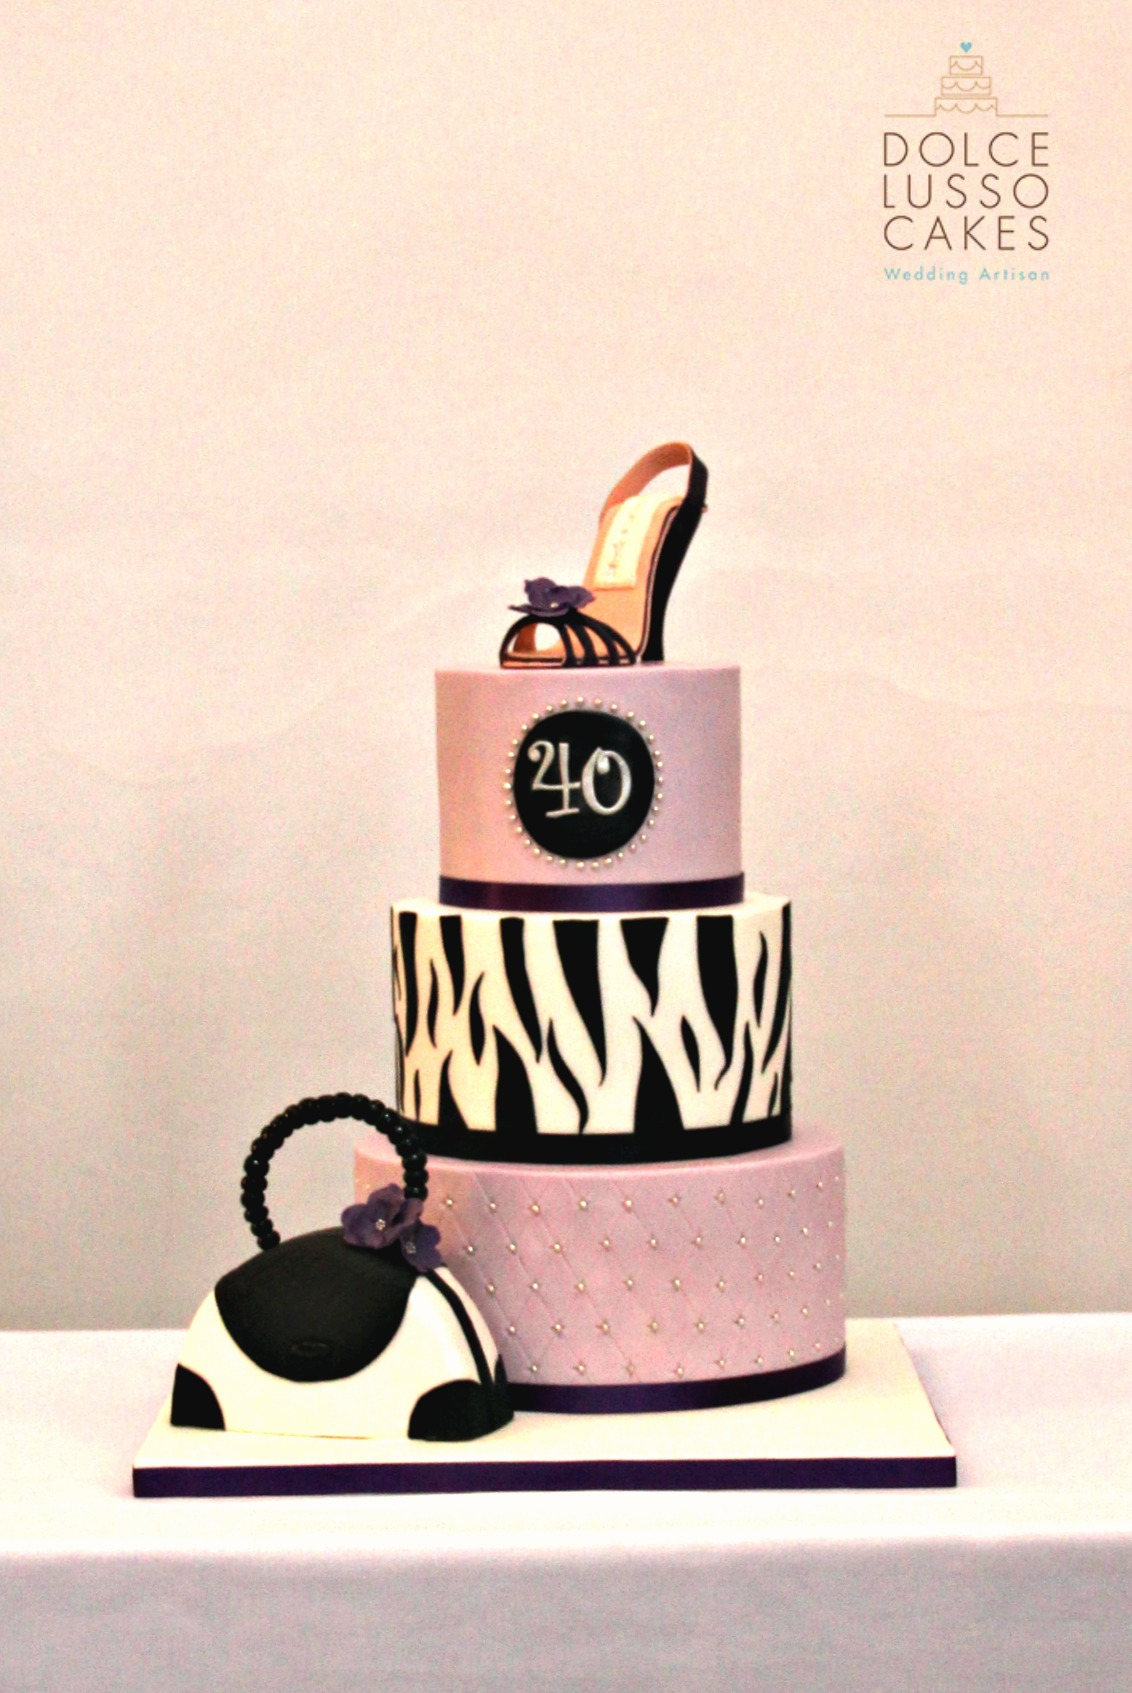 Dolce Lusso Cakes 40 birthday animal print bag shoe black white pink birthday celebration cake